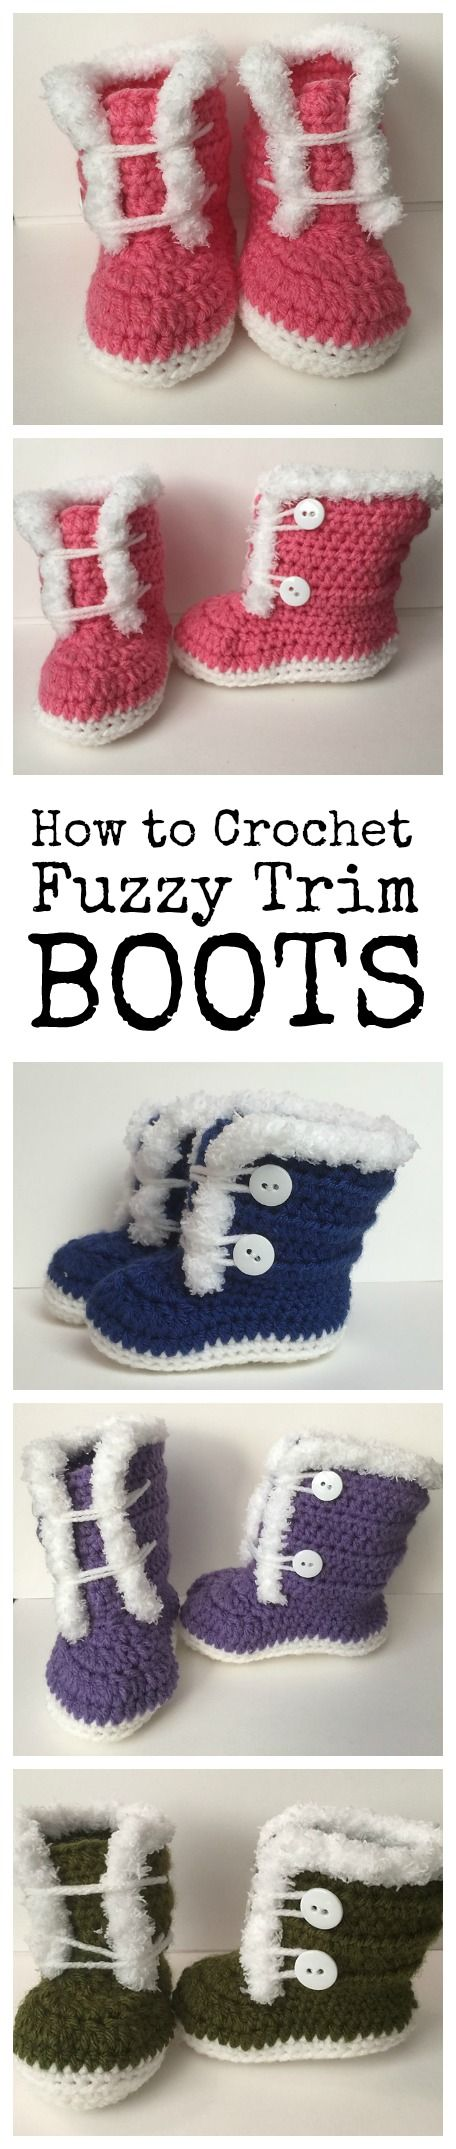 Pin by Lisa Horsfall on all boots and shoes | Pinterest | Crochet ...